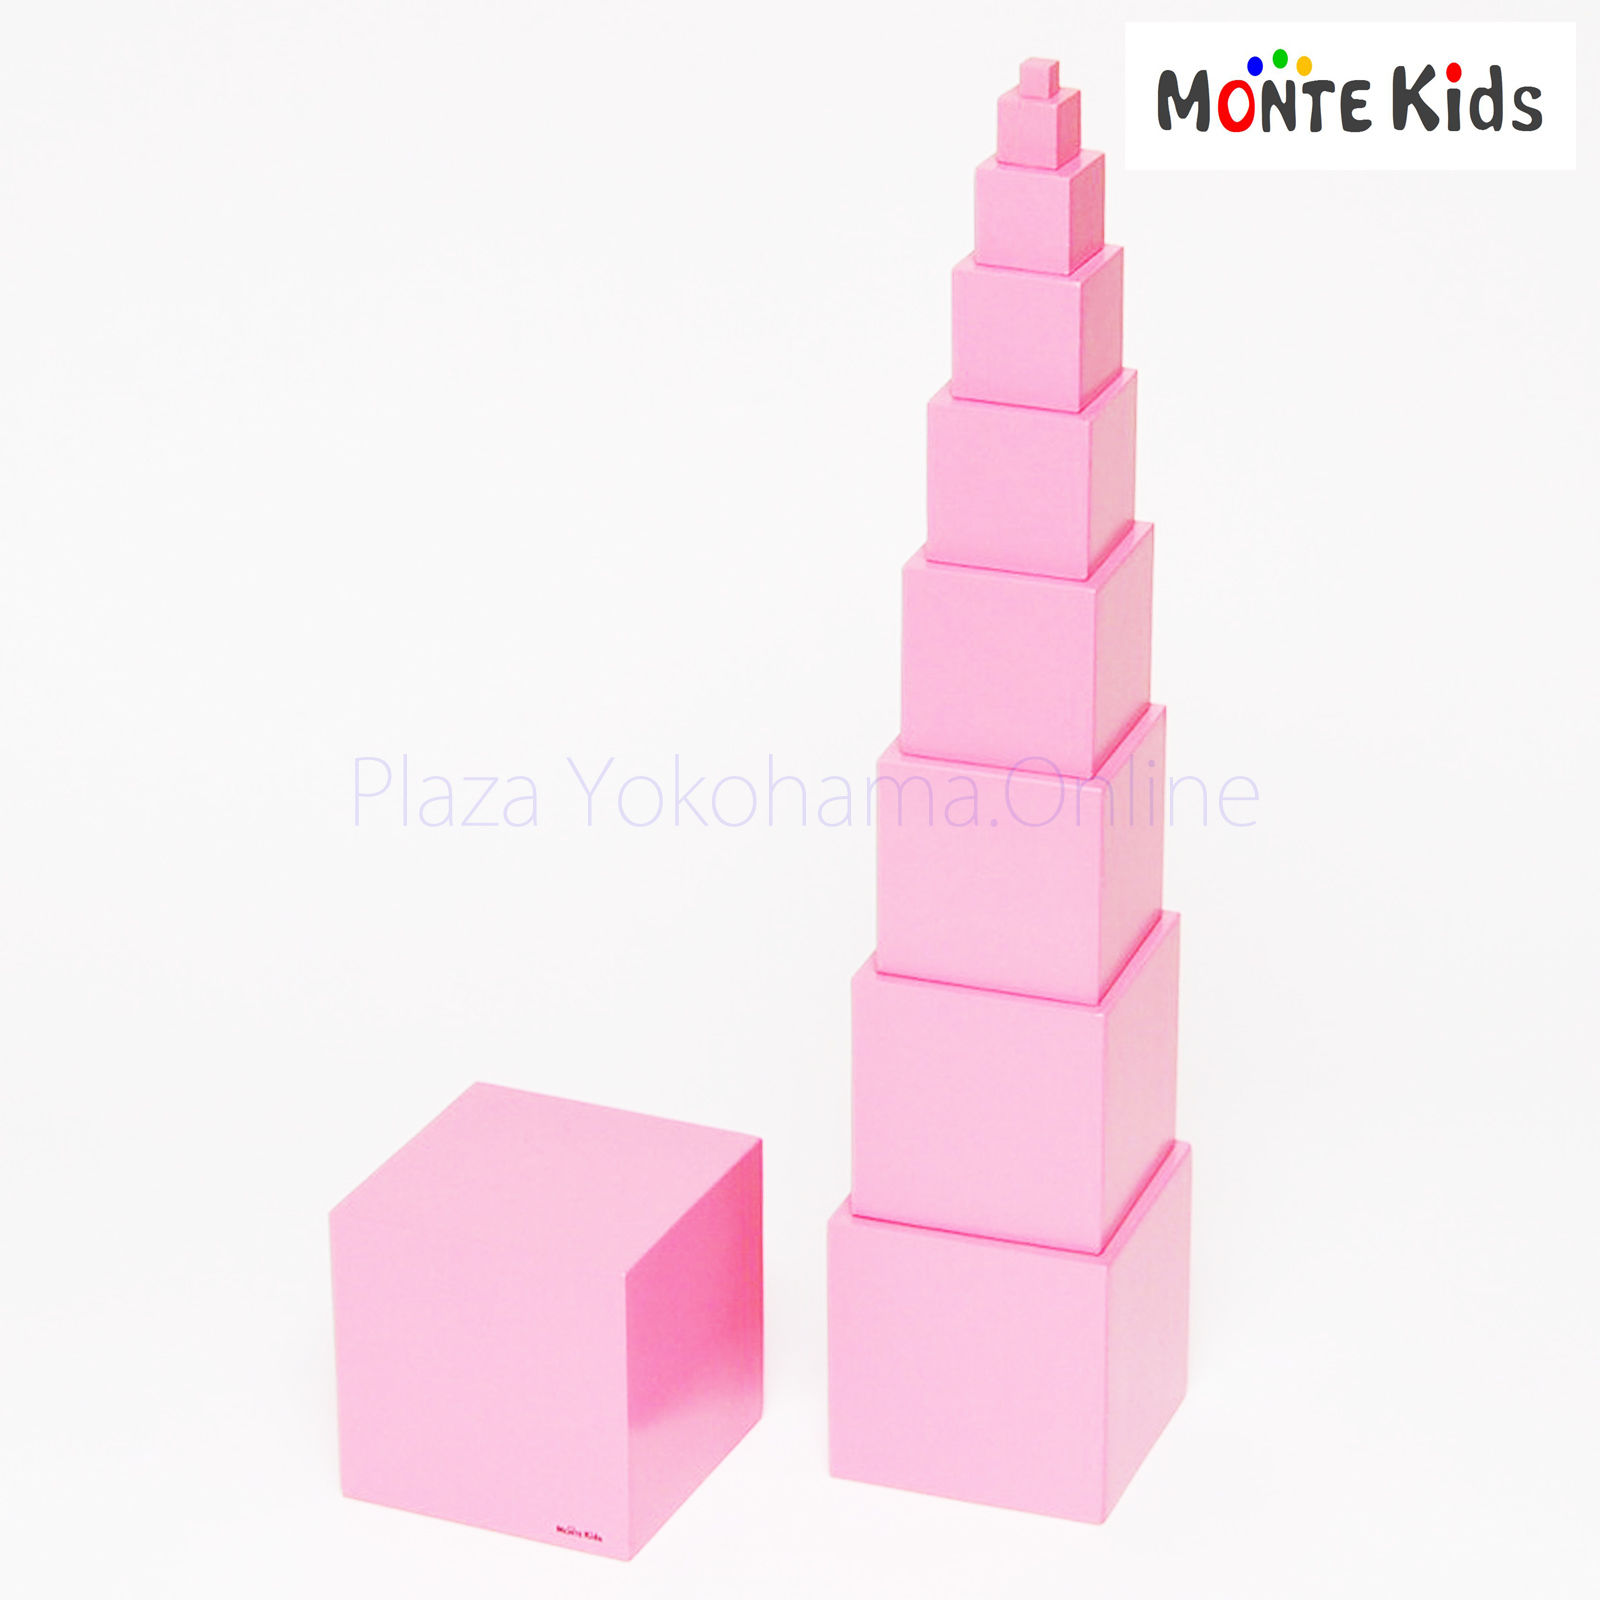 【MONTE Kids】MK-028  ピンクタワー 小  家庭用 ≪OUTLET≫